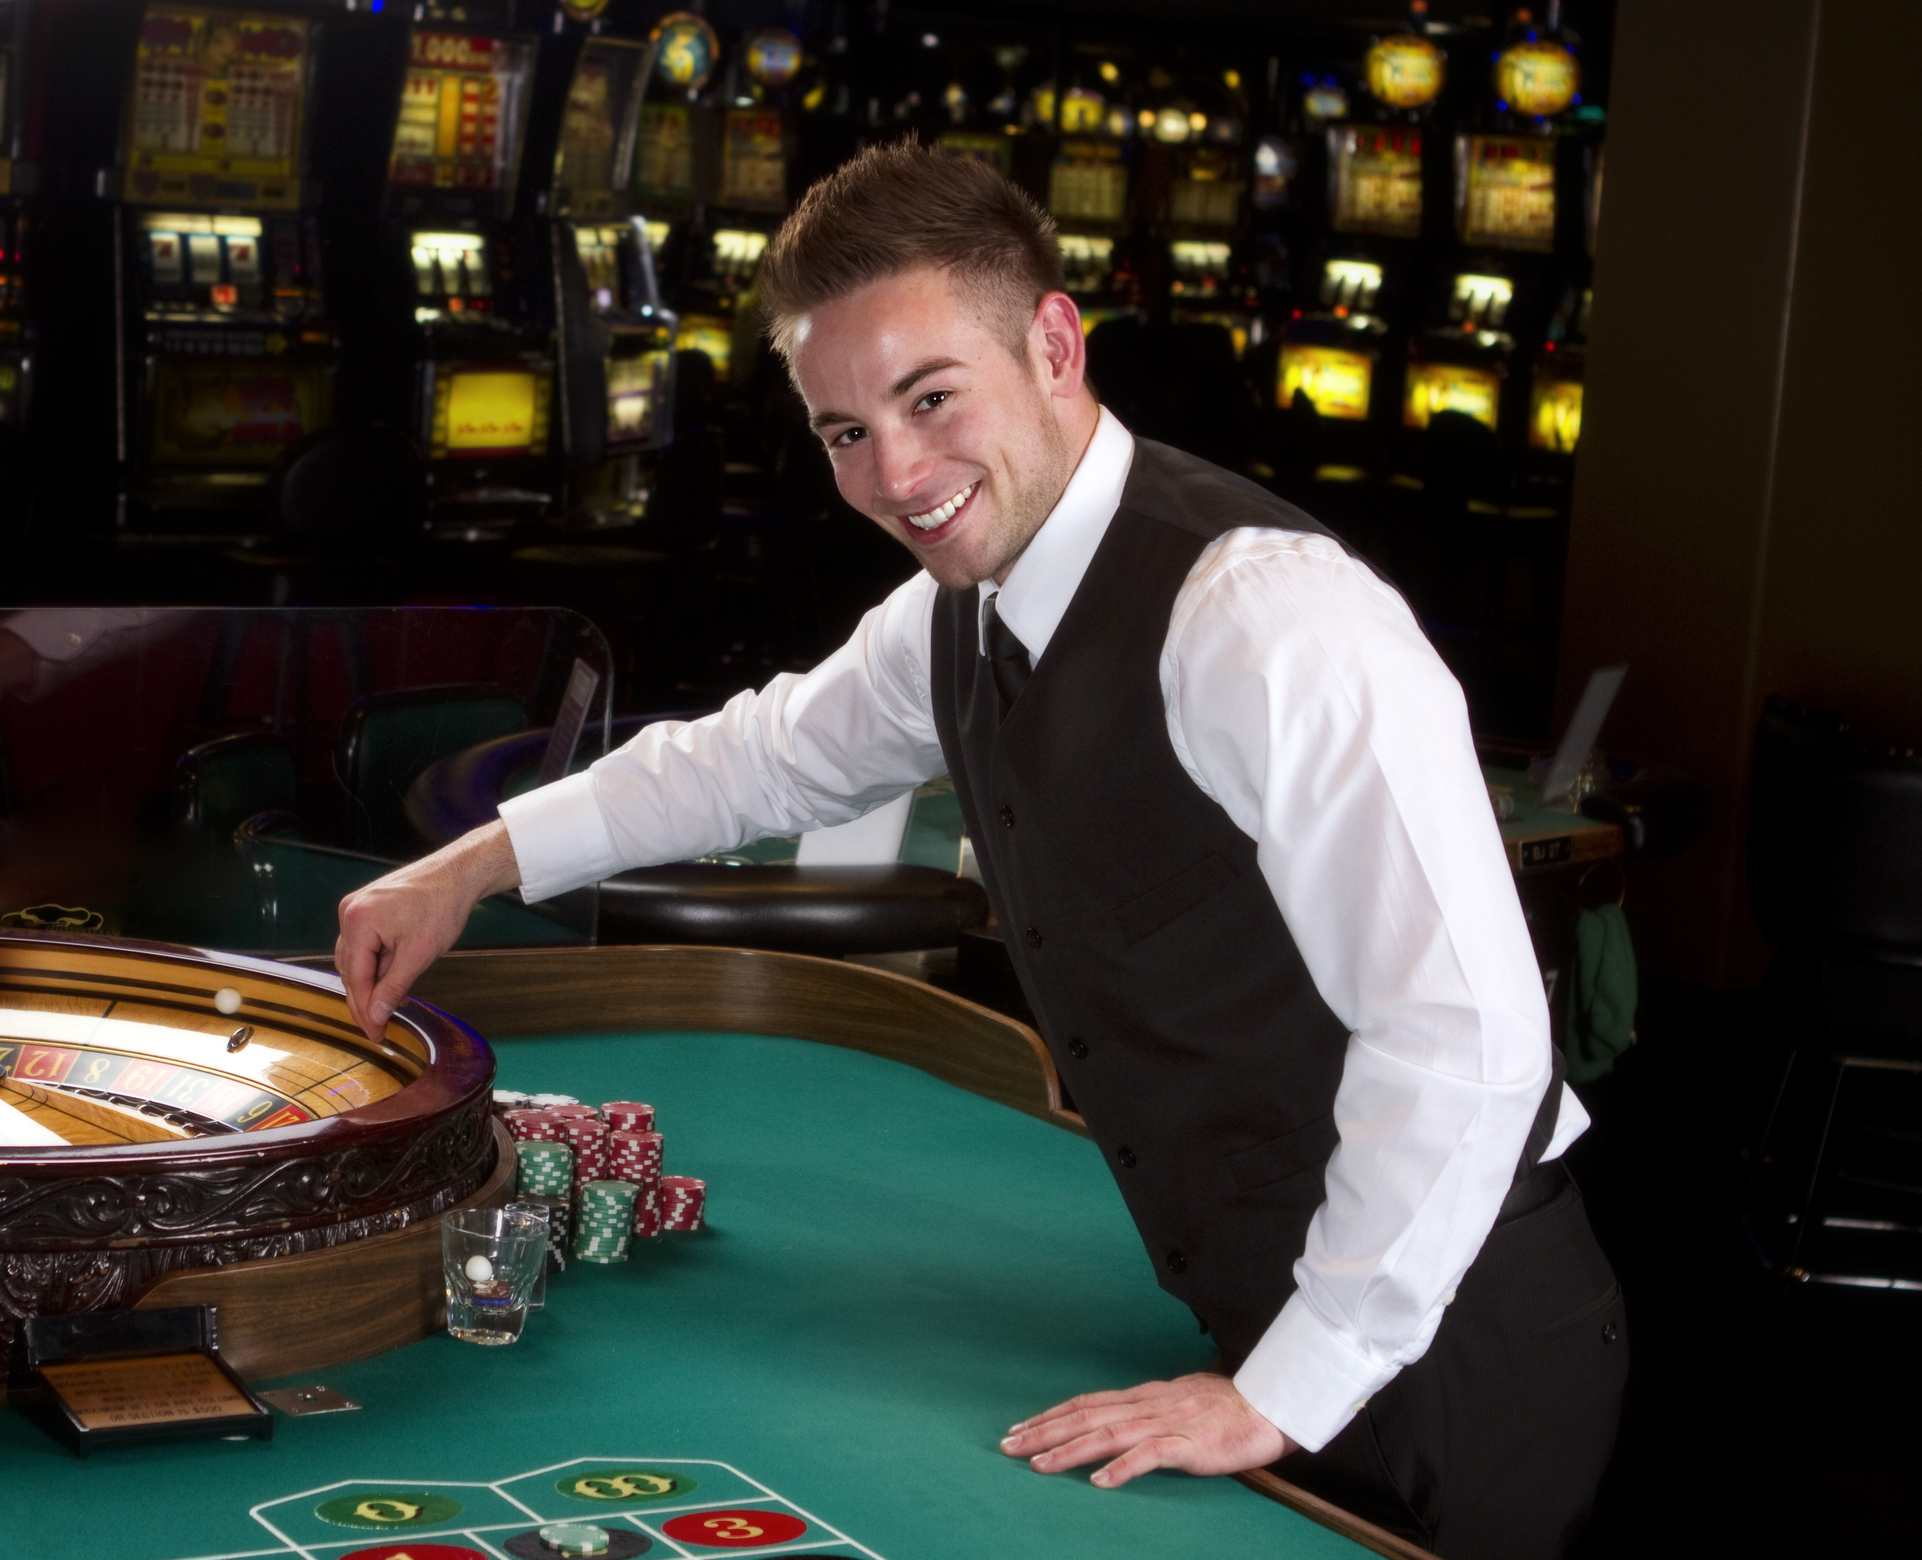 Enjoy Your Favorite Table Game Online with Soodded